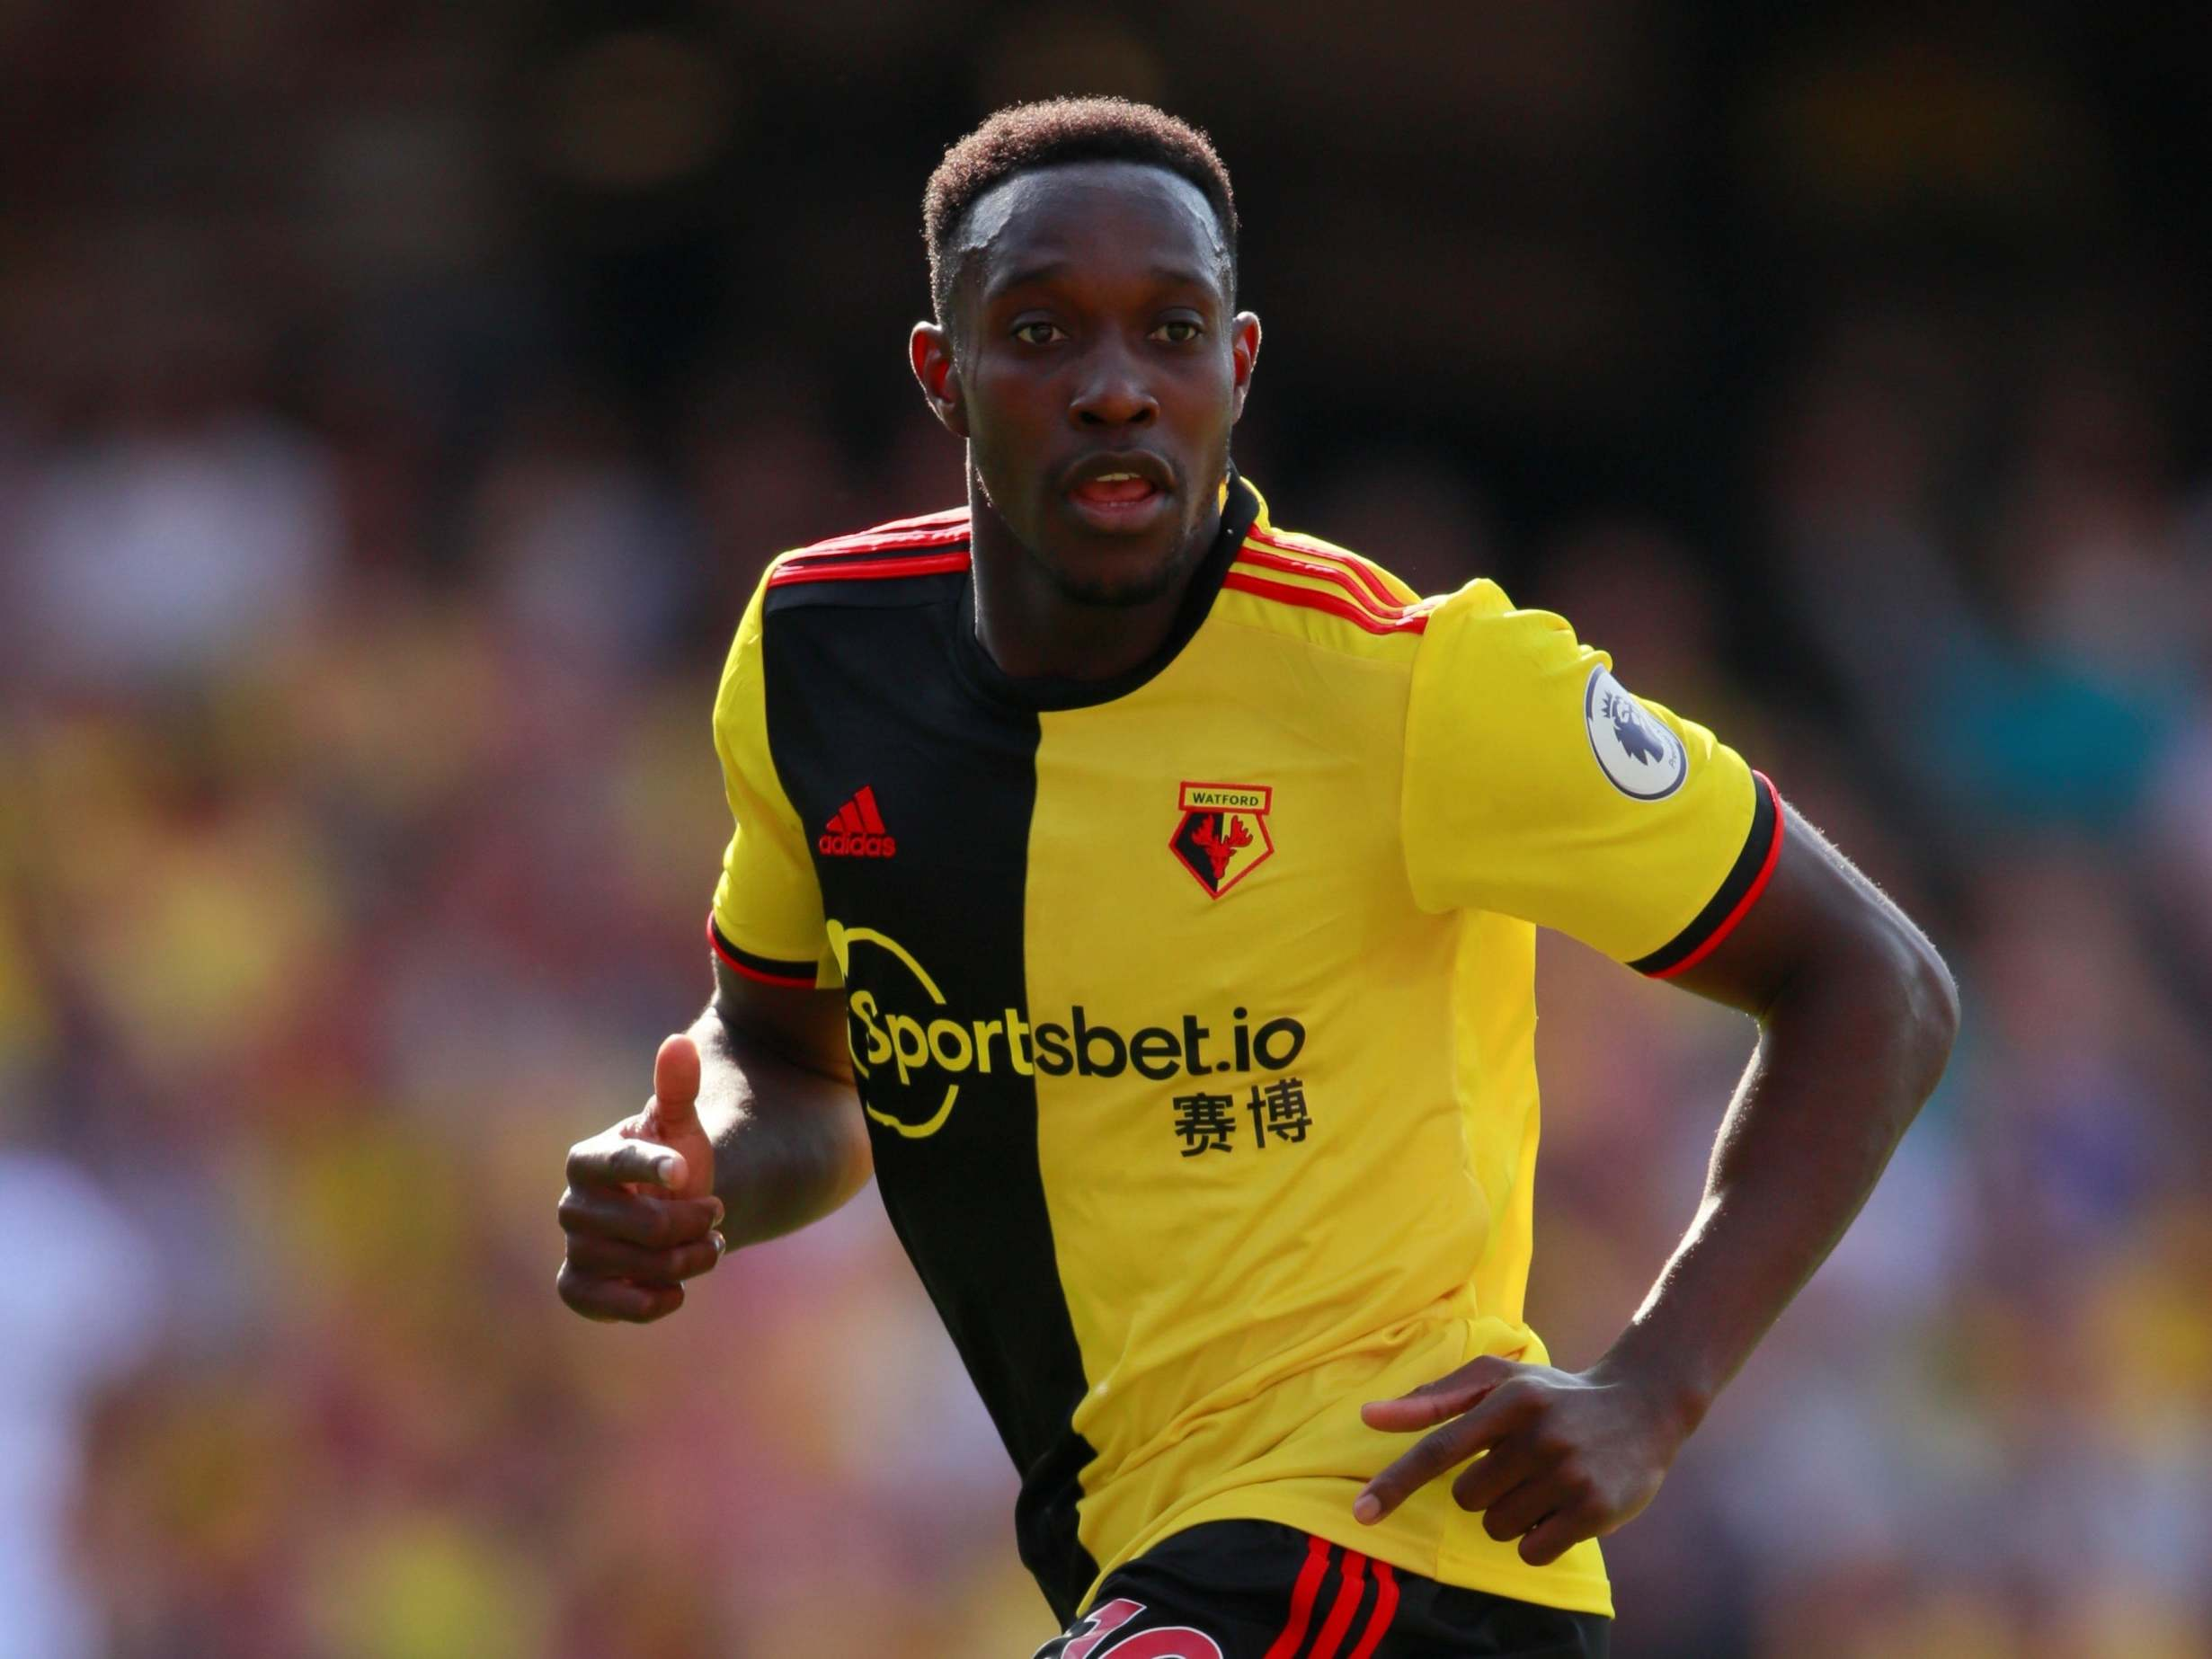 Watford news: Javi Gracia will not rush Danny Welbeck as needs time to get back to his best